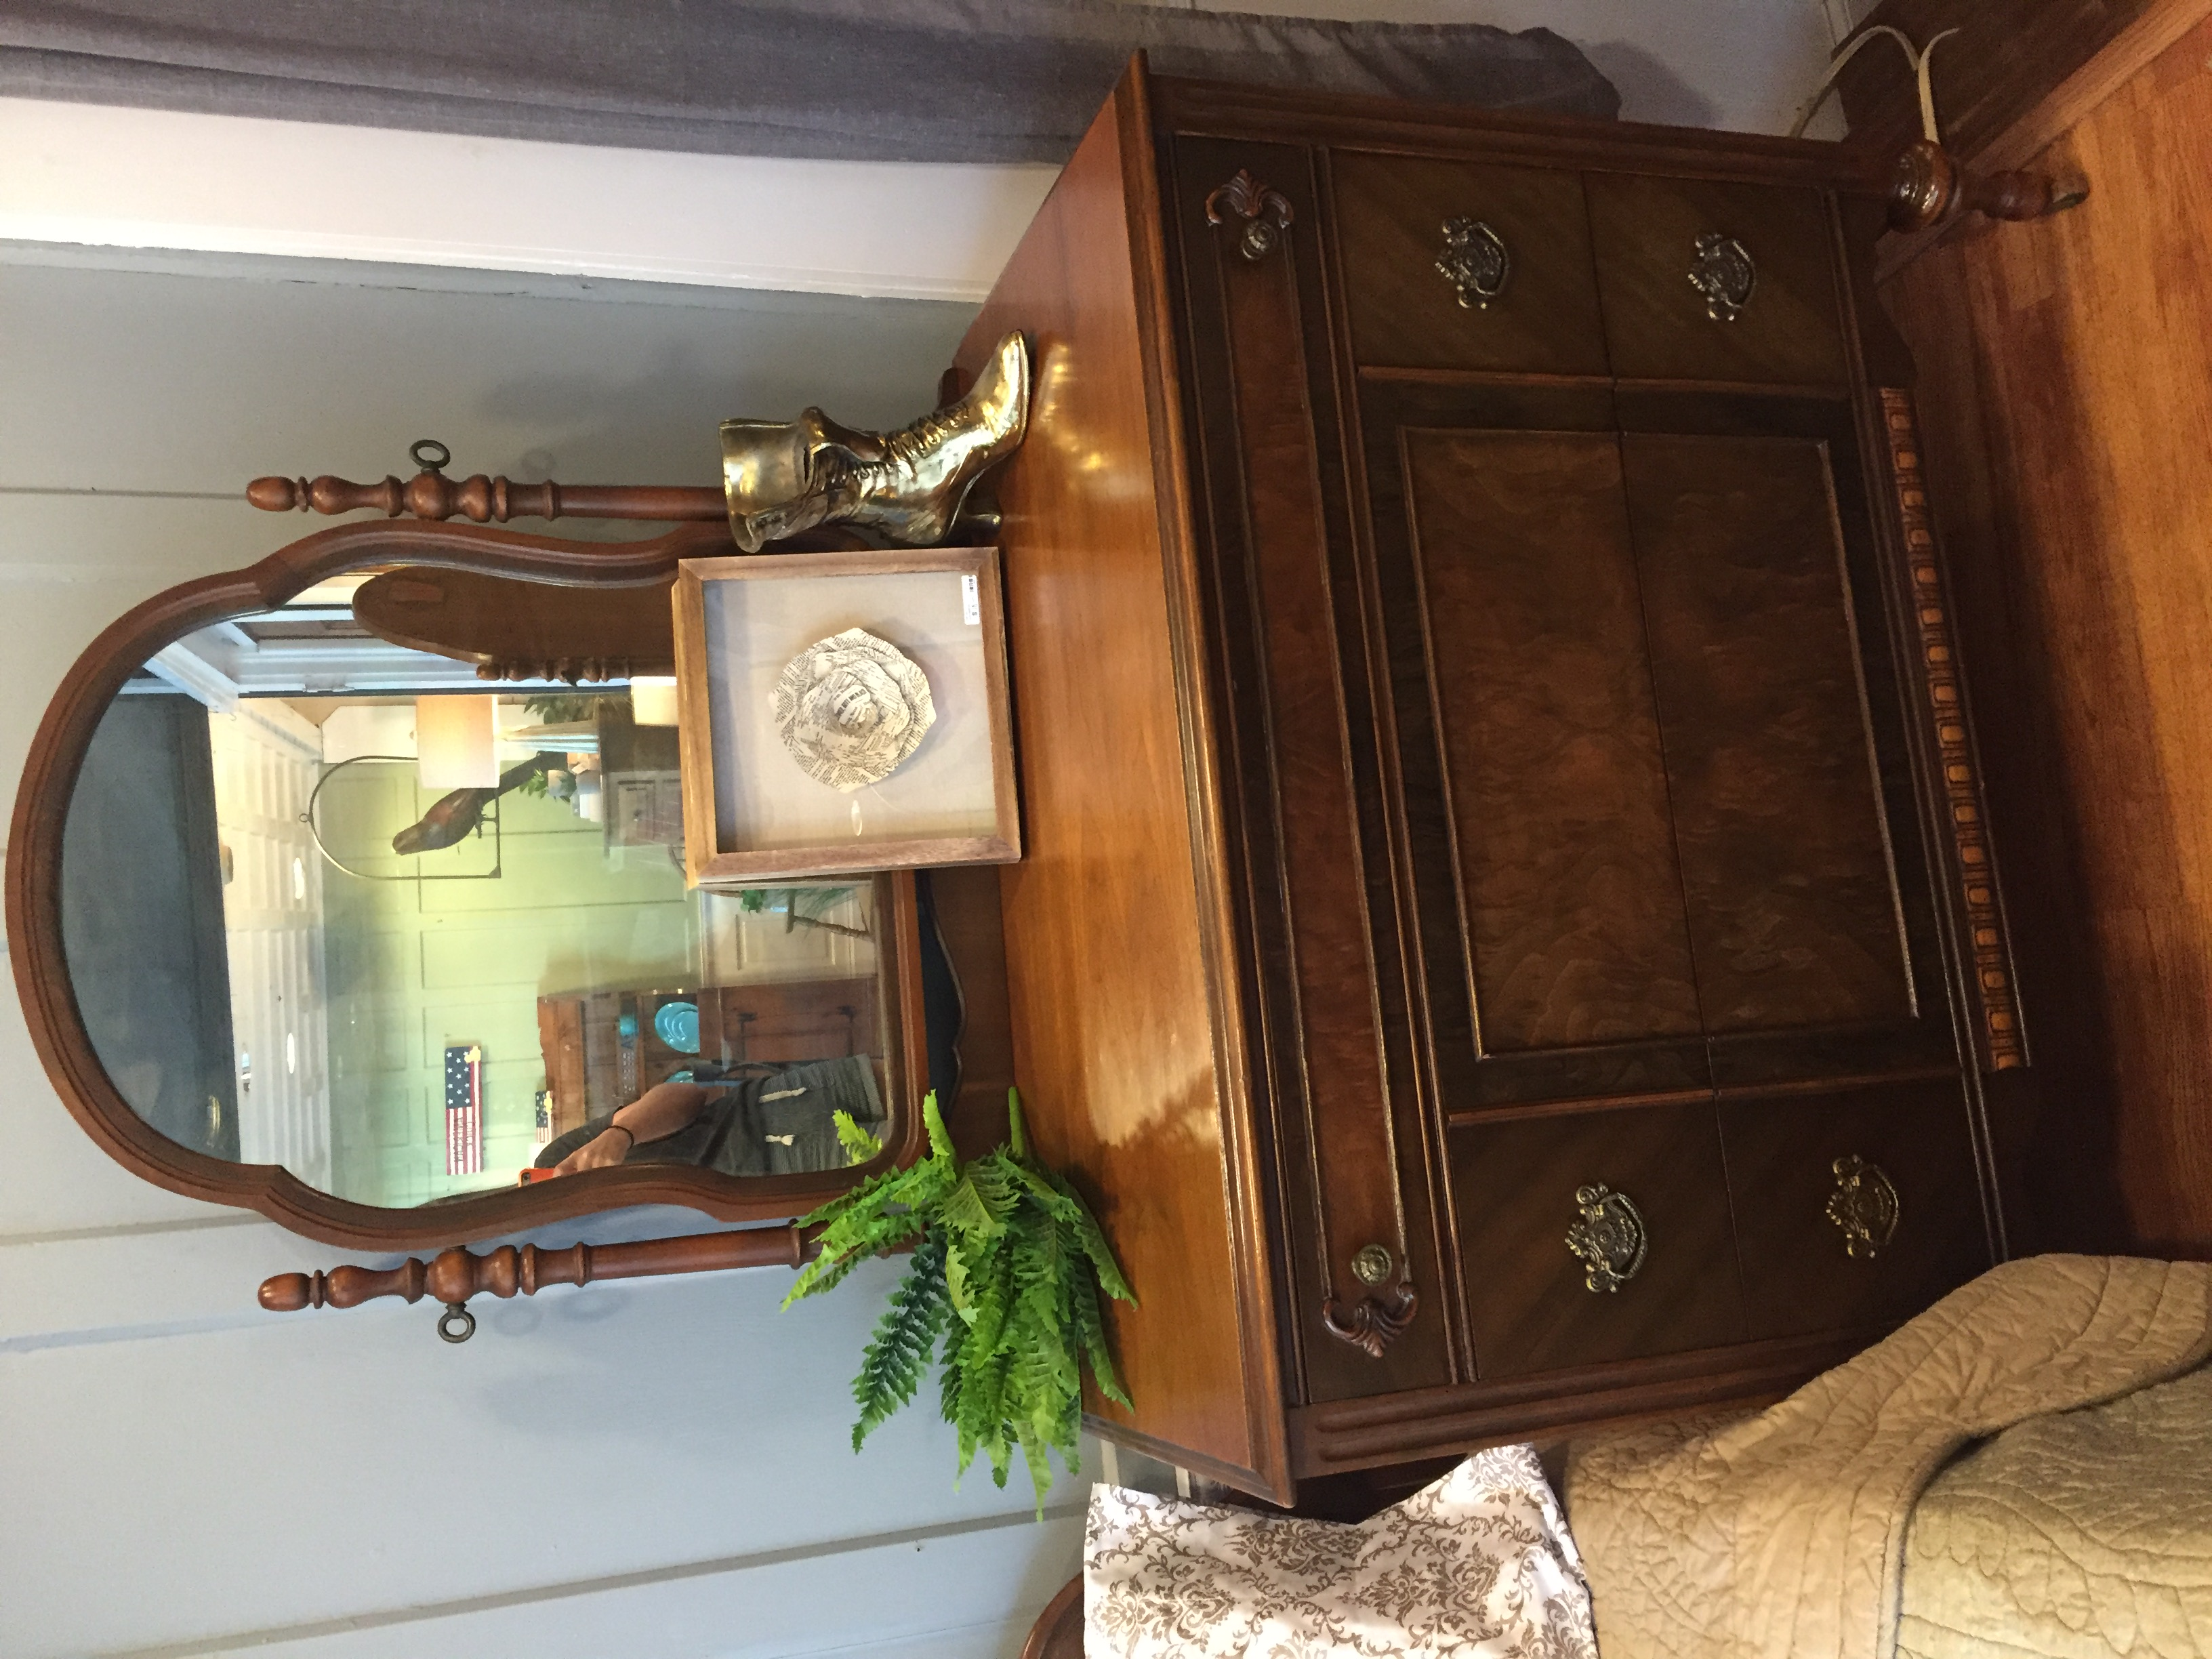 MAHOGANY INLAID DRESSER WITH MIRROR